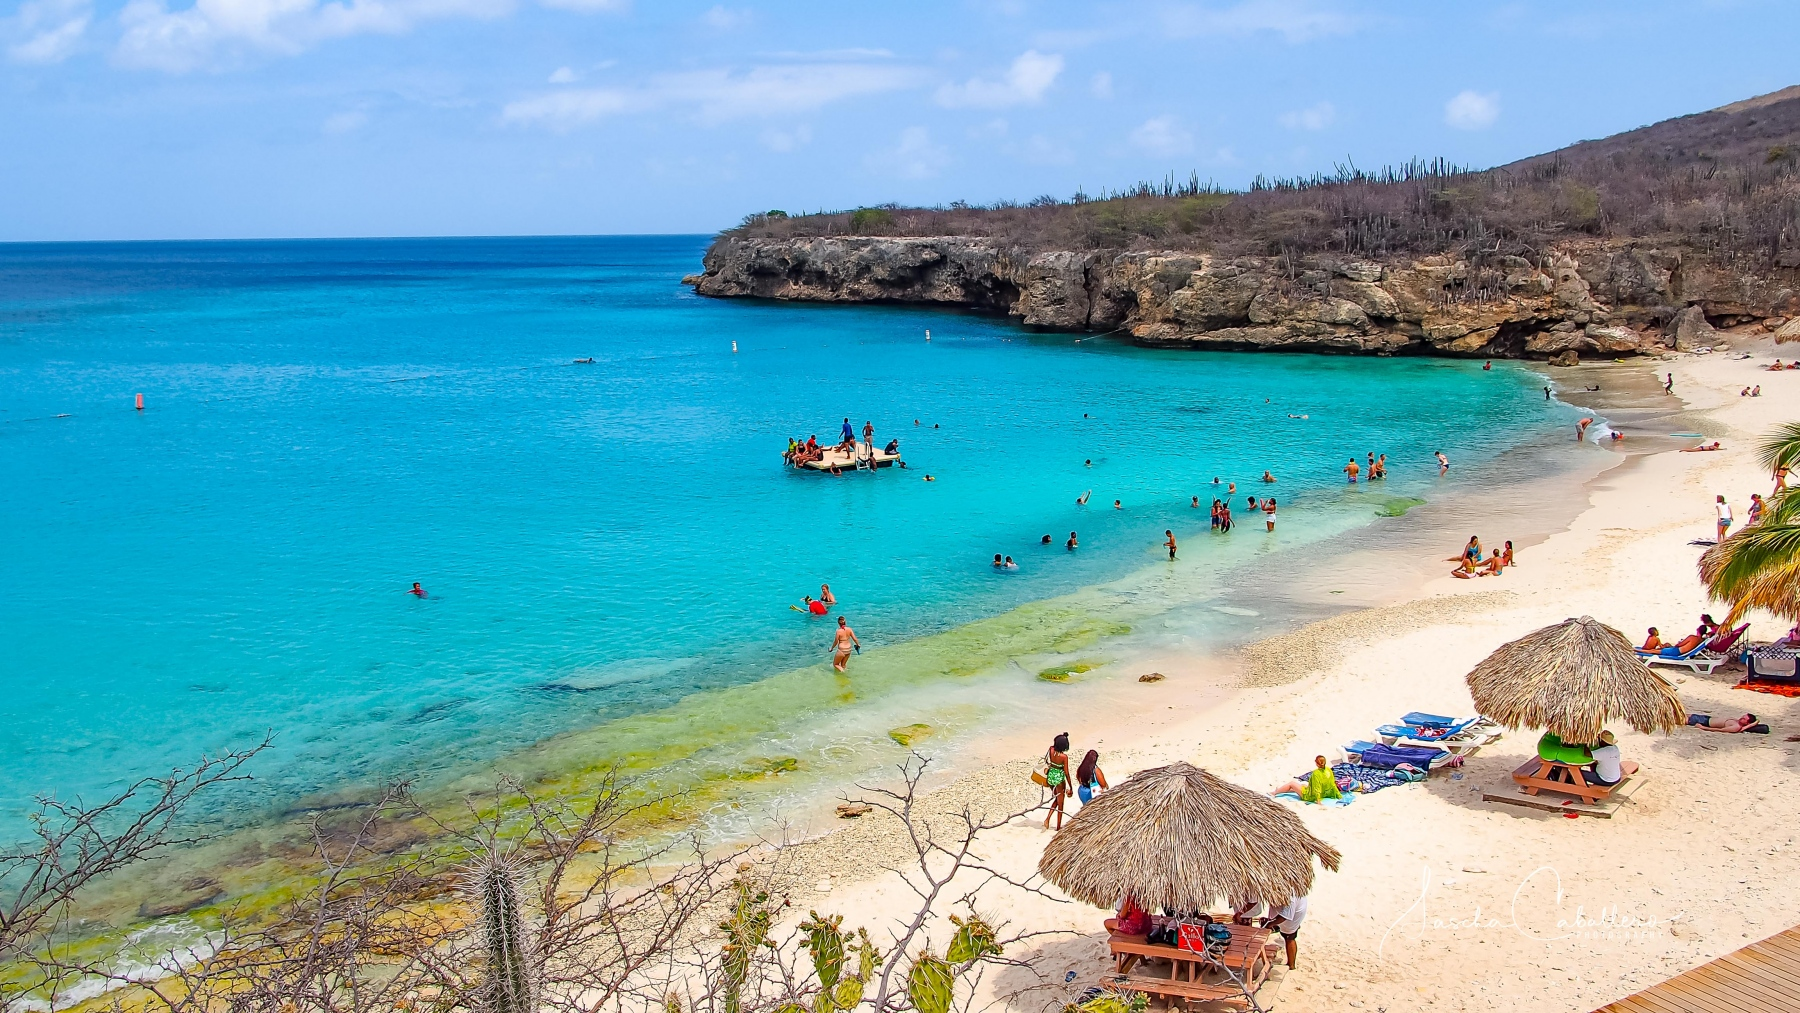 Curacao Beach Playa Kalki